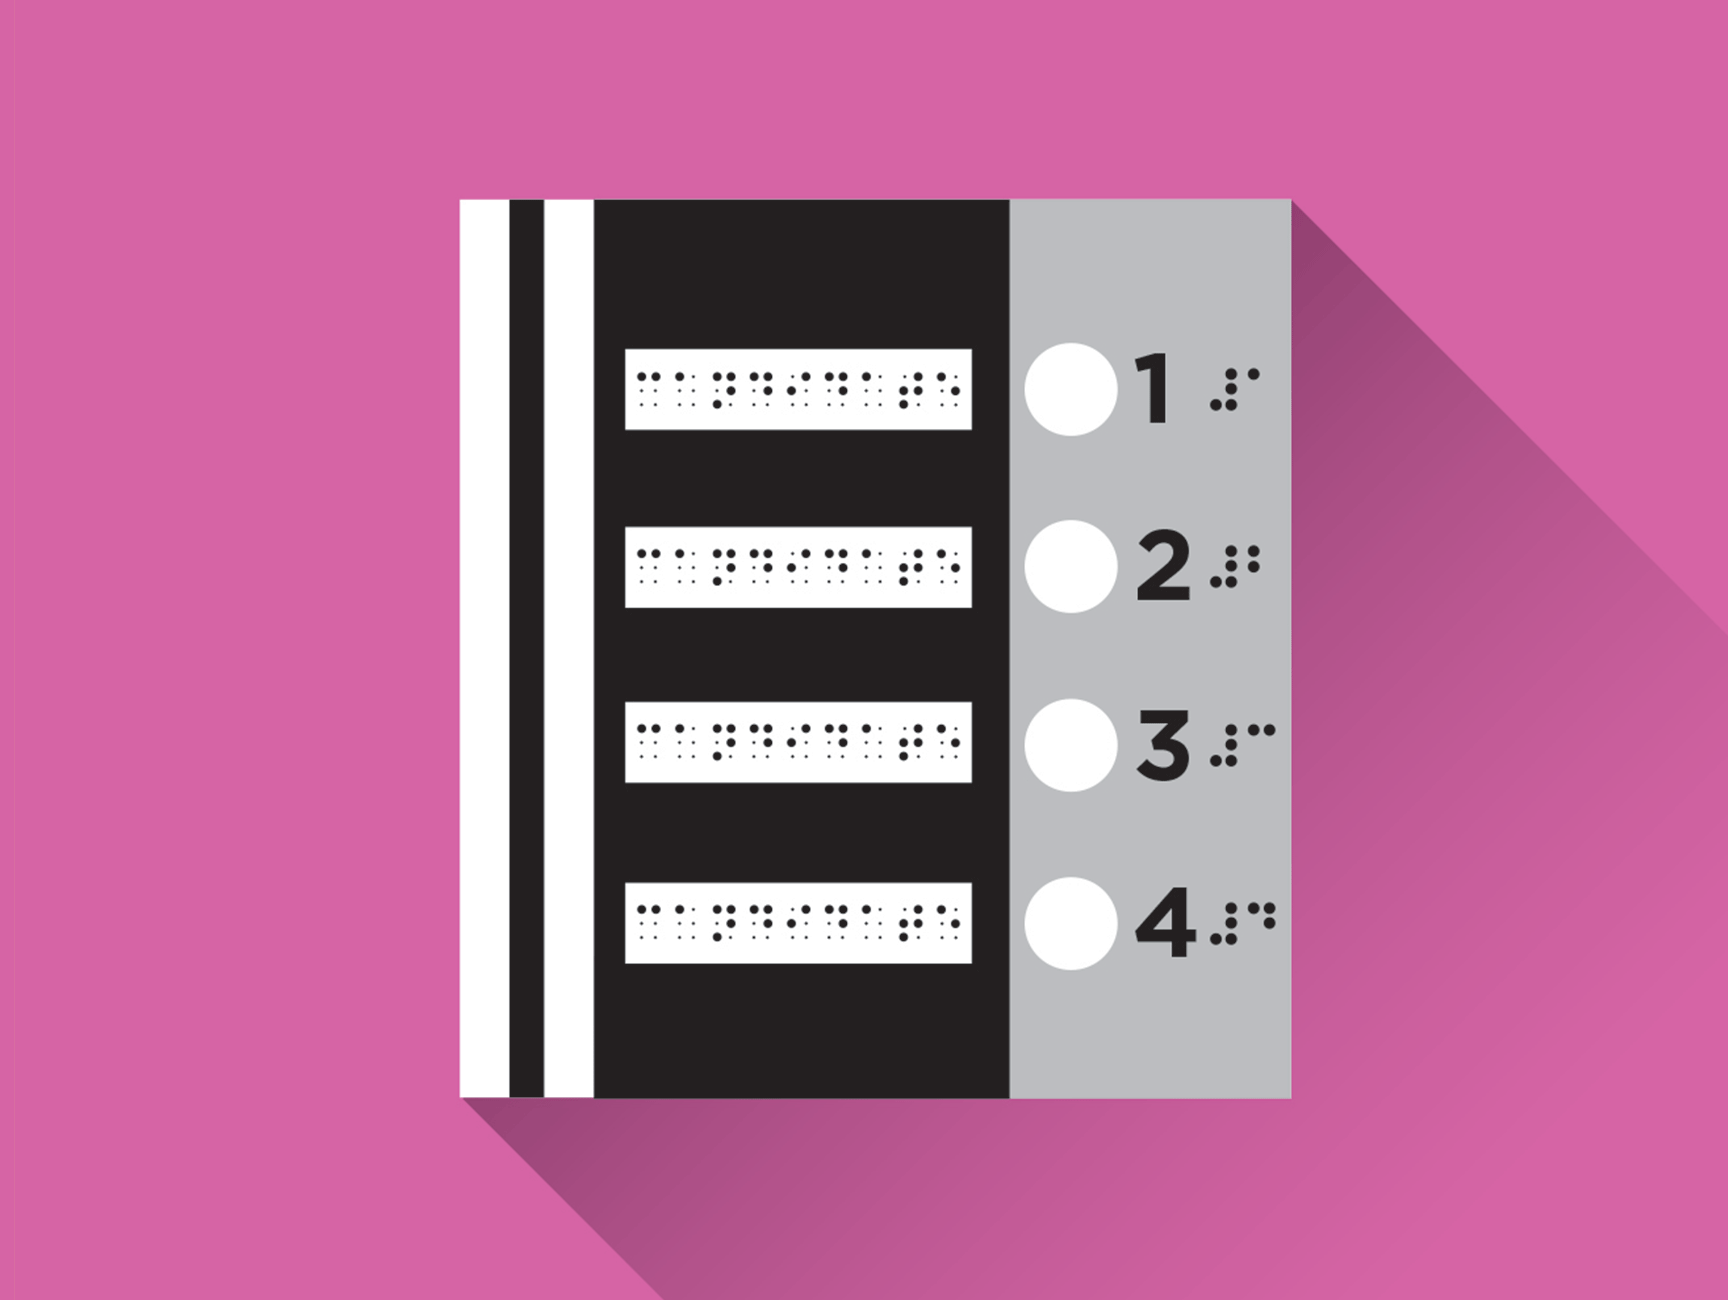 Illustration of a braille voting ballot